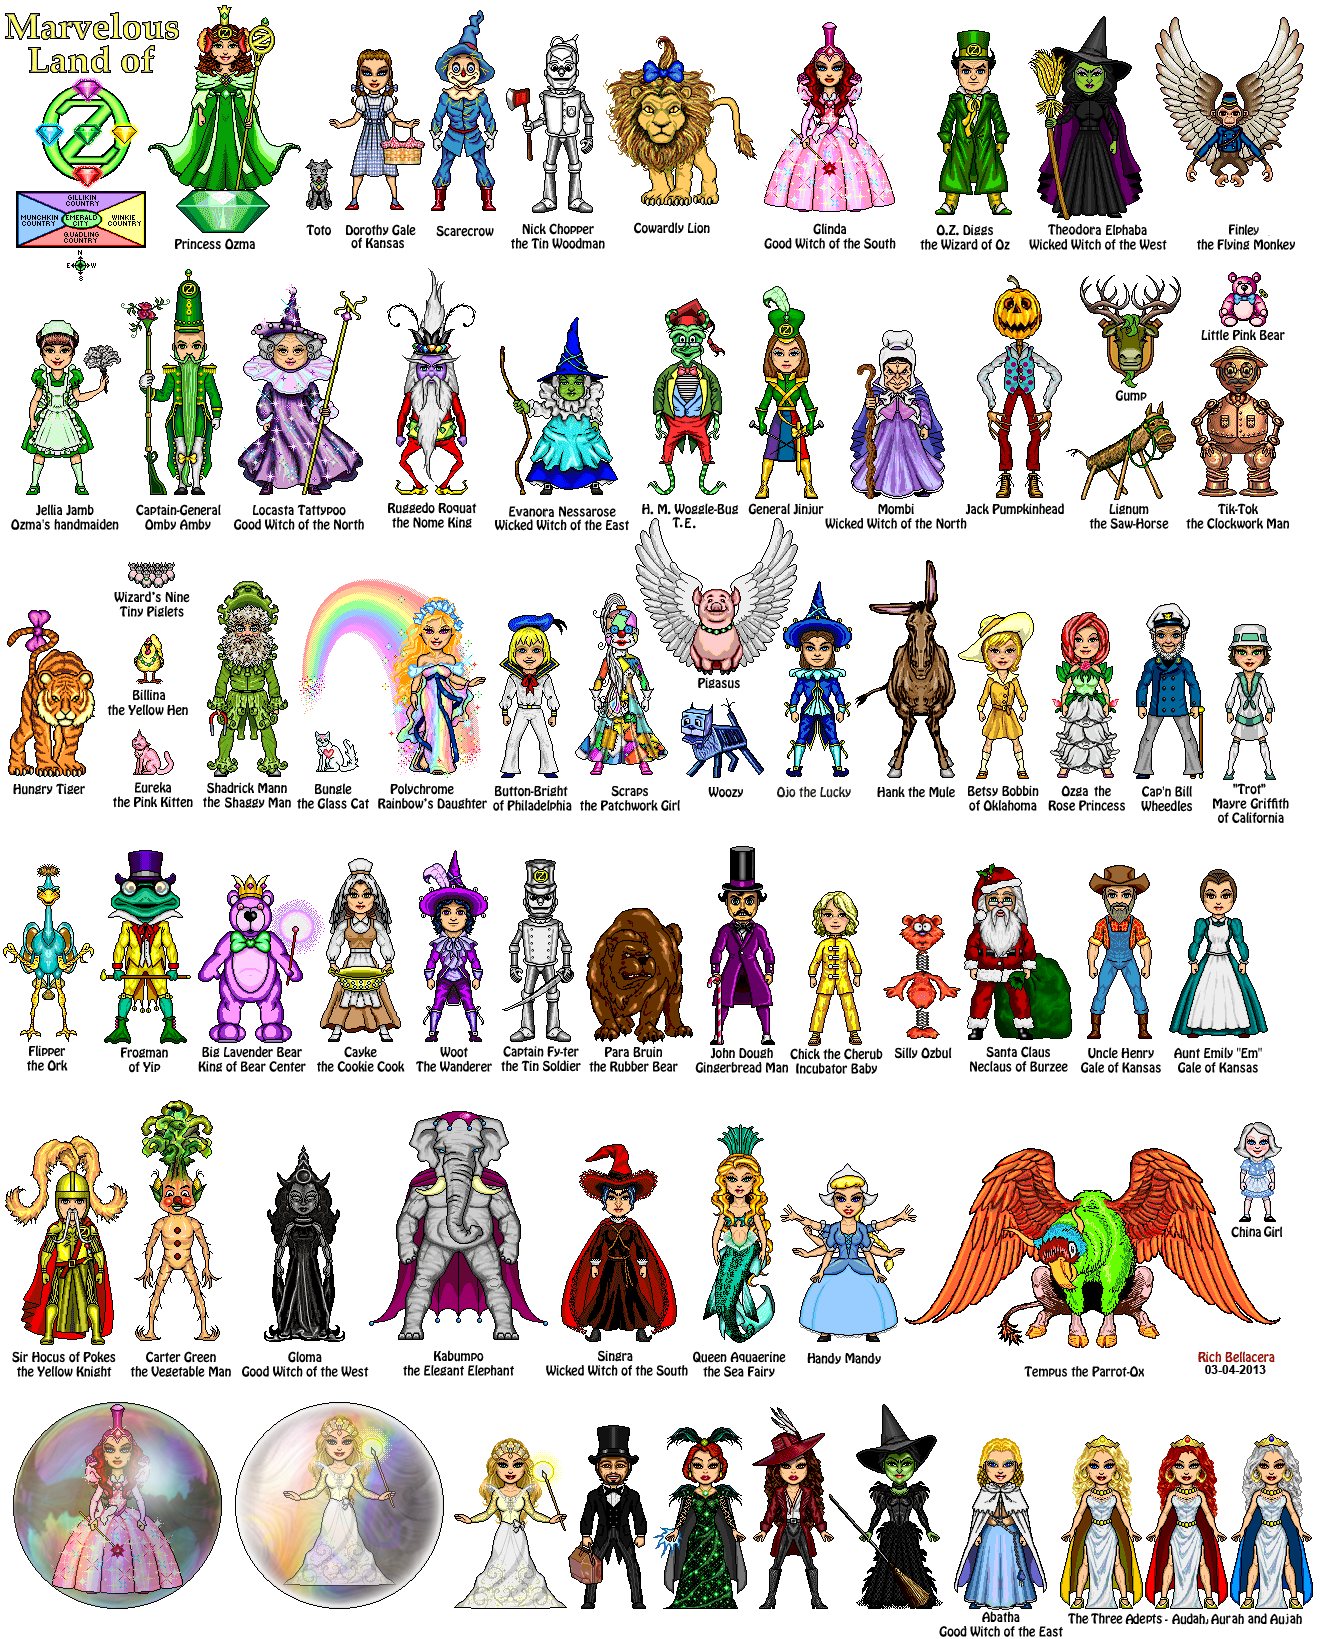 Oz_Characters_RichB.png (1332×1639) Wizard of oz